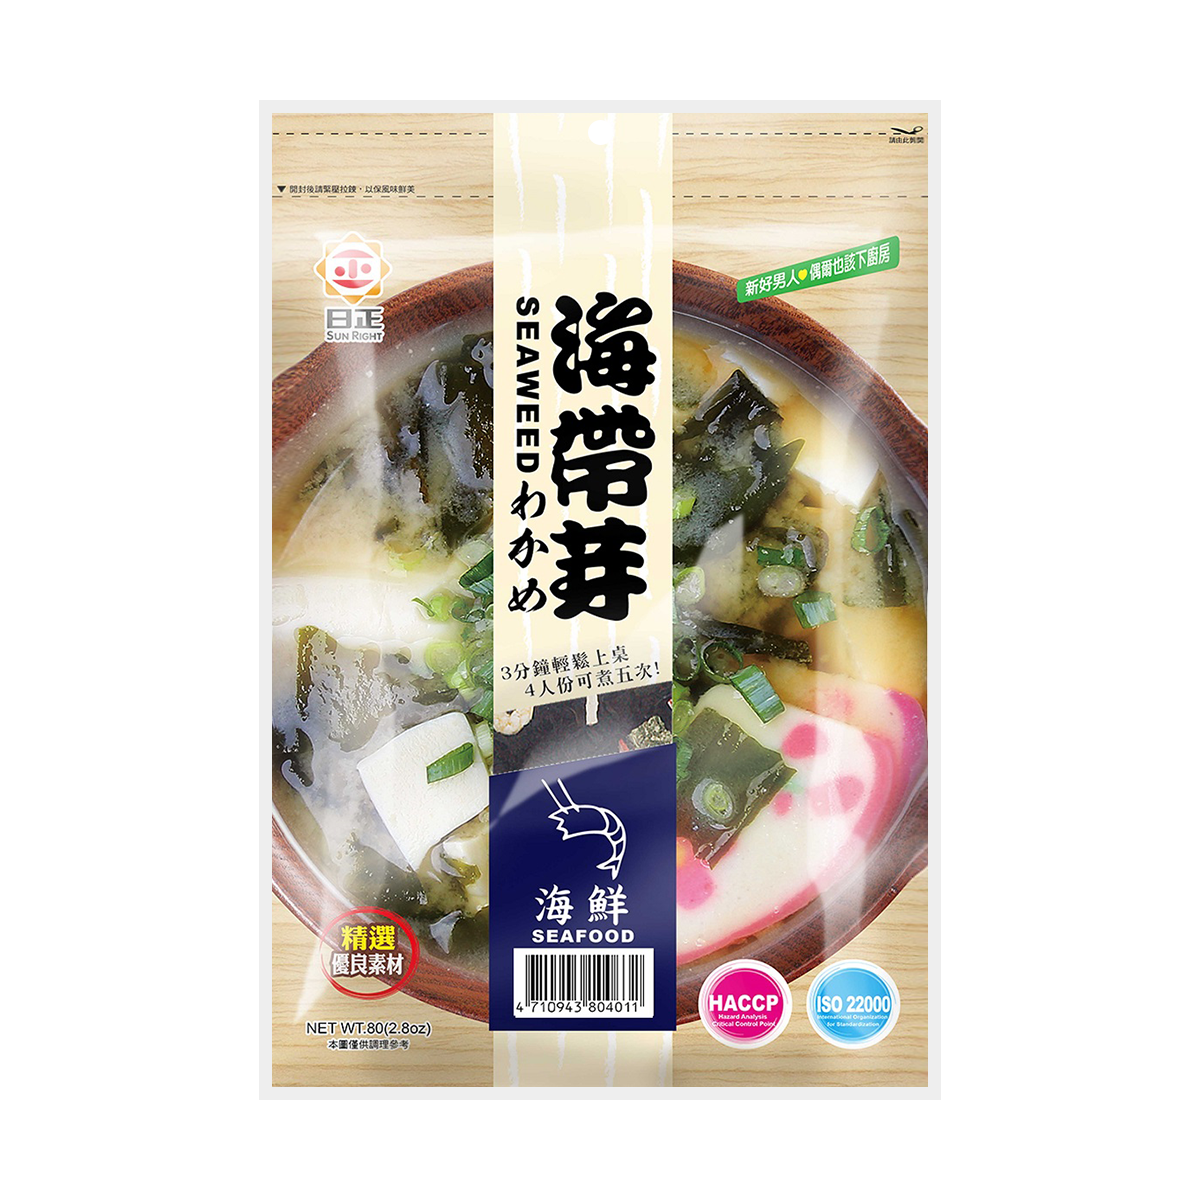 Yamibuy.com:Customer reviews:Sun Right Seaweed Soup (Seafood Flavor) 80g 3 Minute Ready Soup